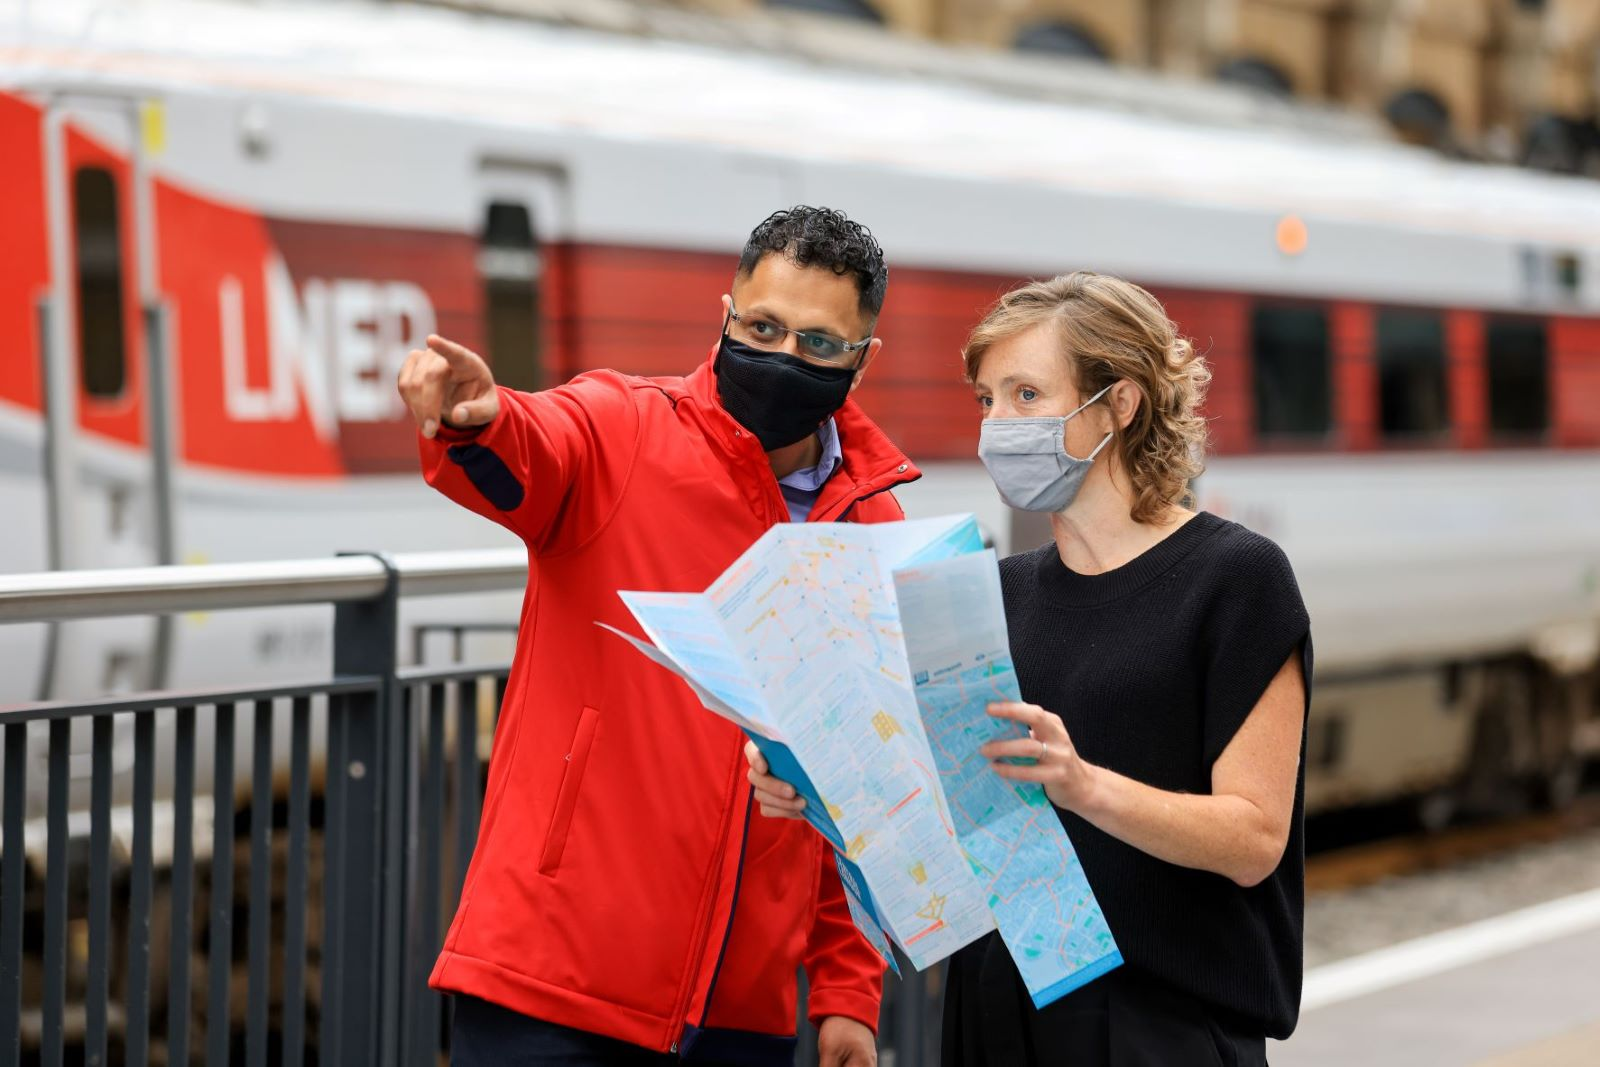 LNER Strides Out To Encourage More Customers To Discover London On Foot